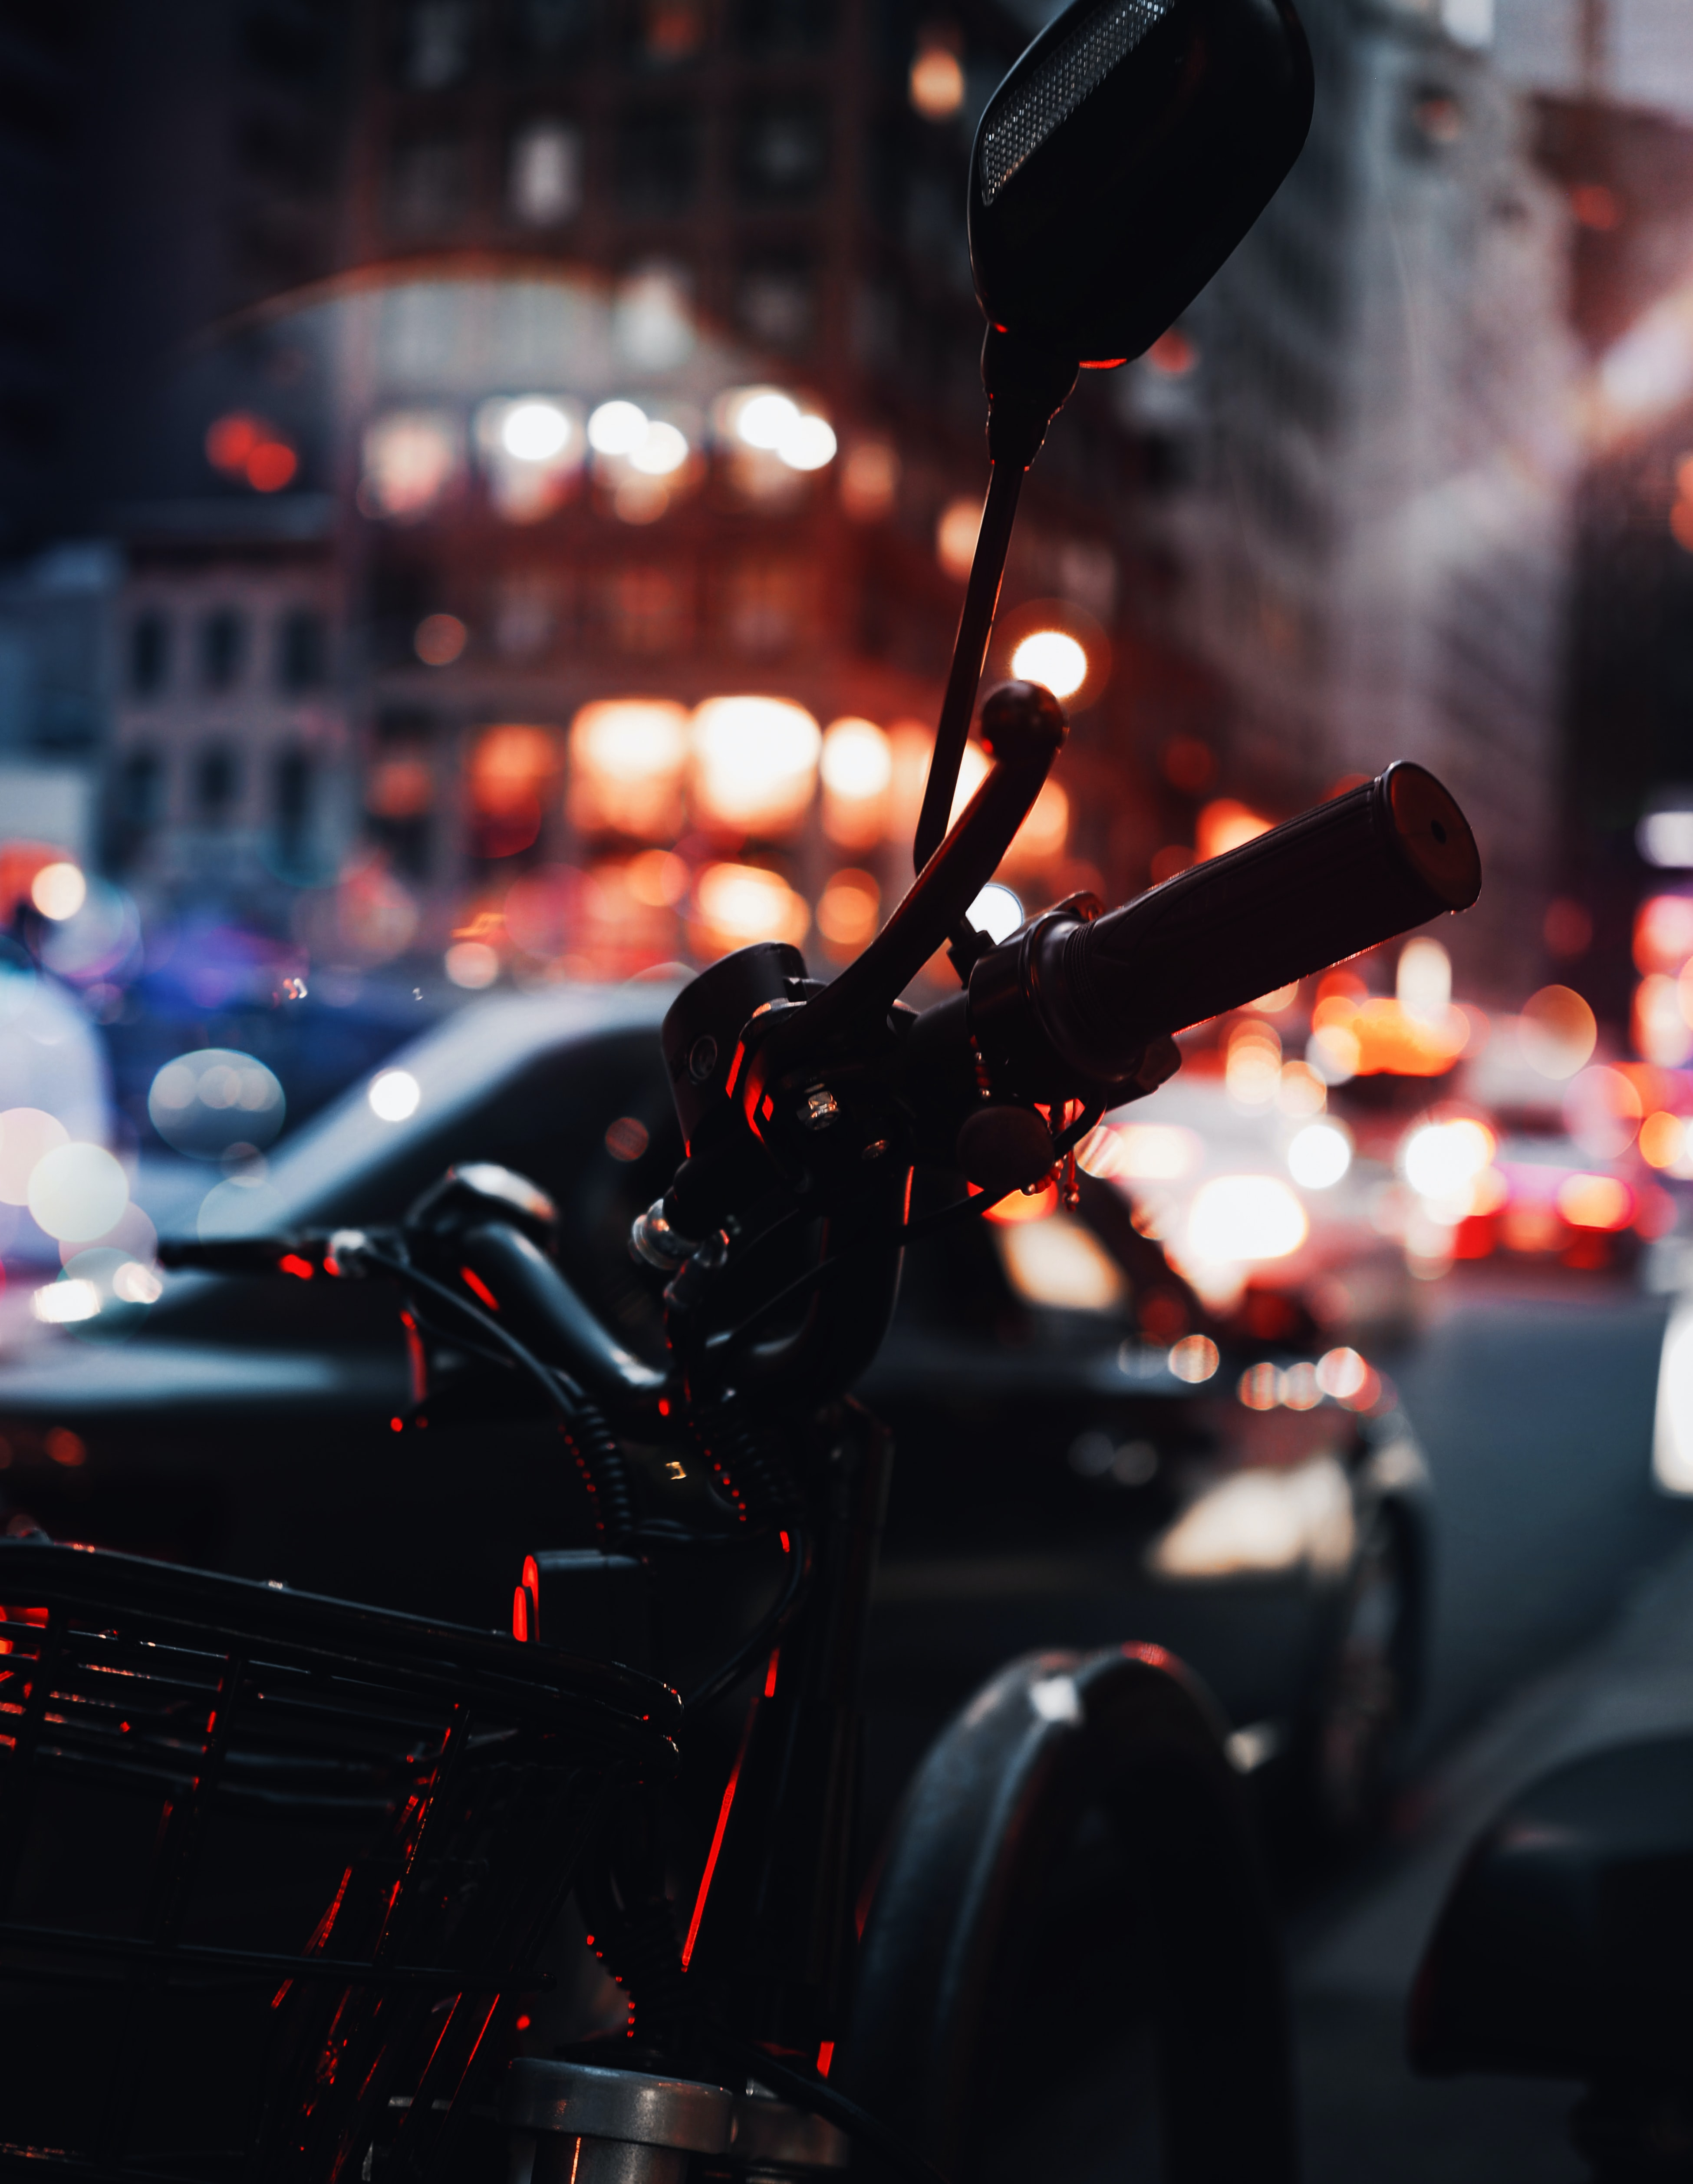 Black And Red Motorcycle In Bokeh Photography Photo Free New York Image On Unsplash